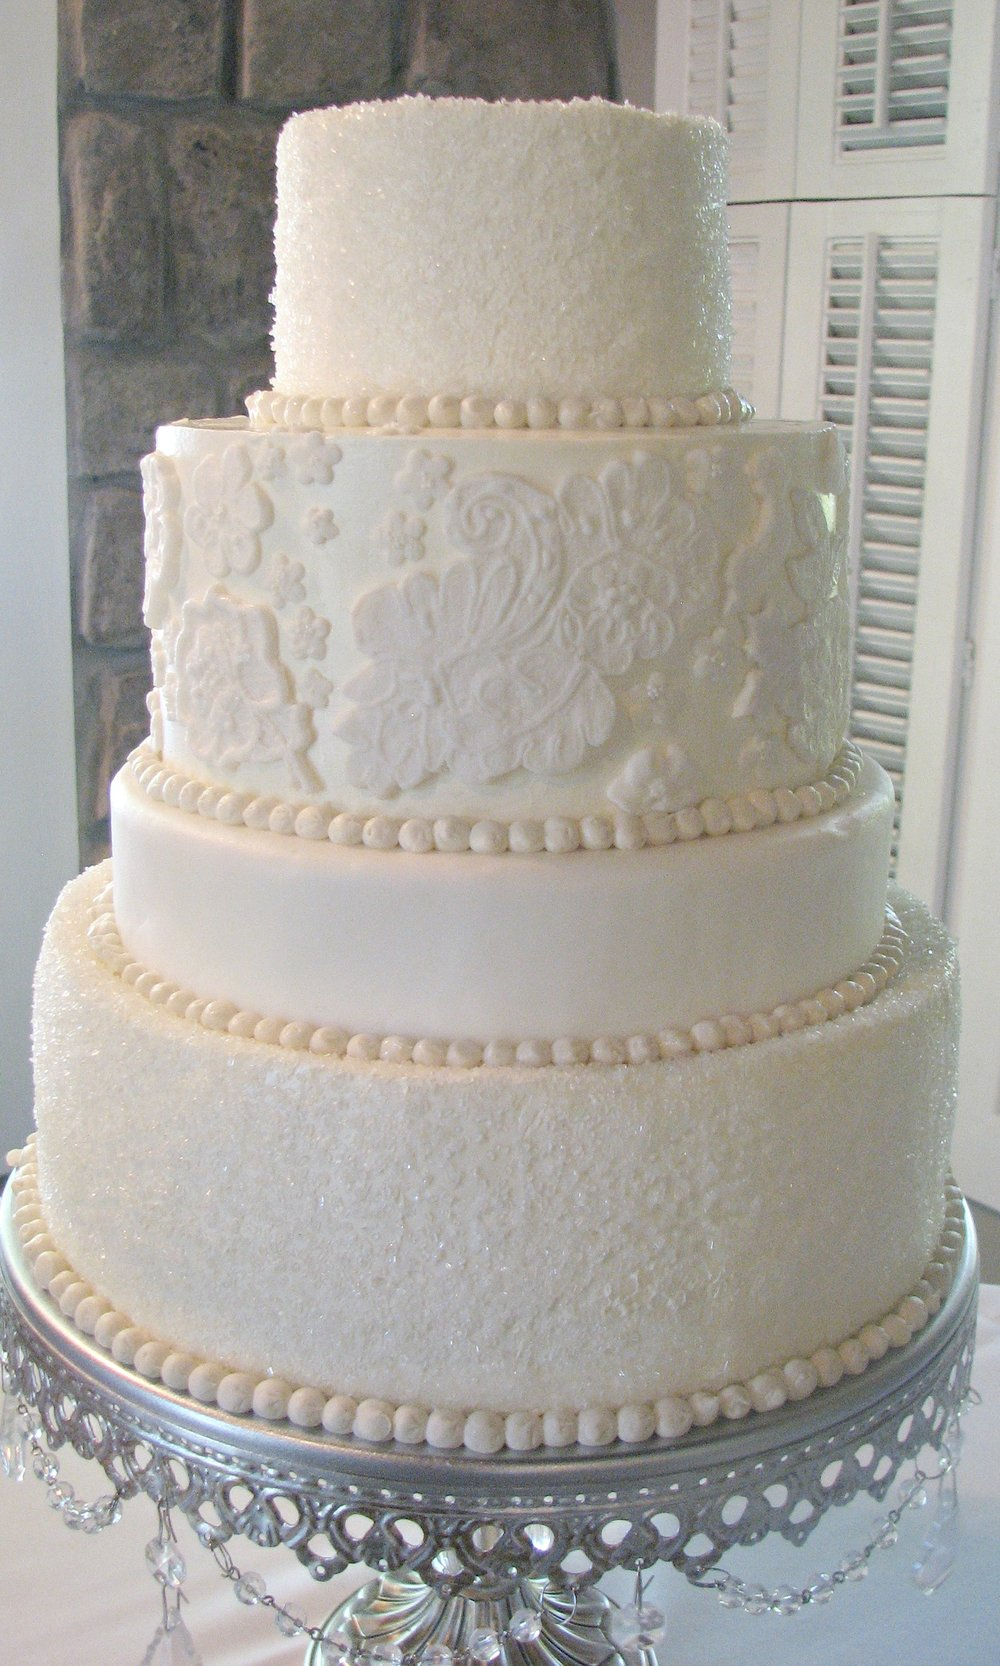 Tiered White Wedding Cake | Silver Cake Stand